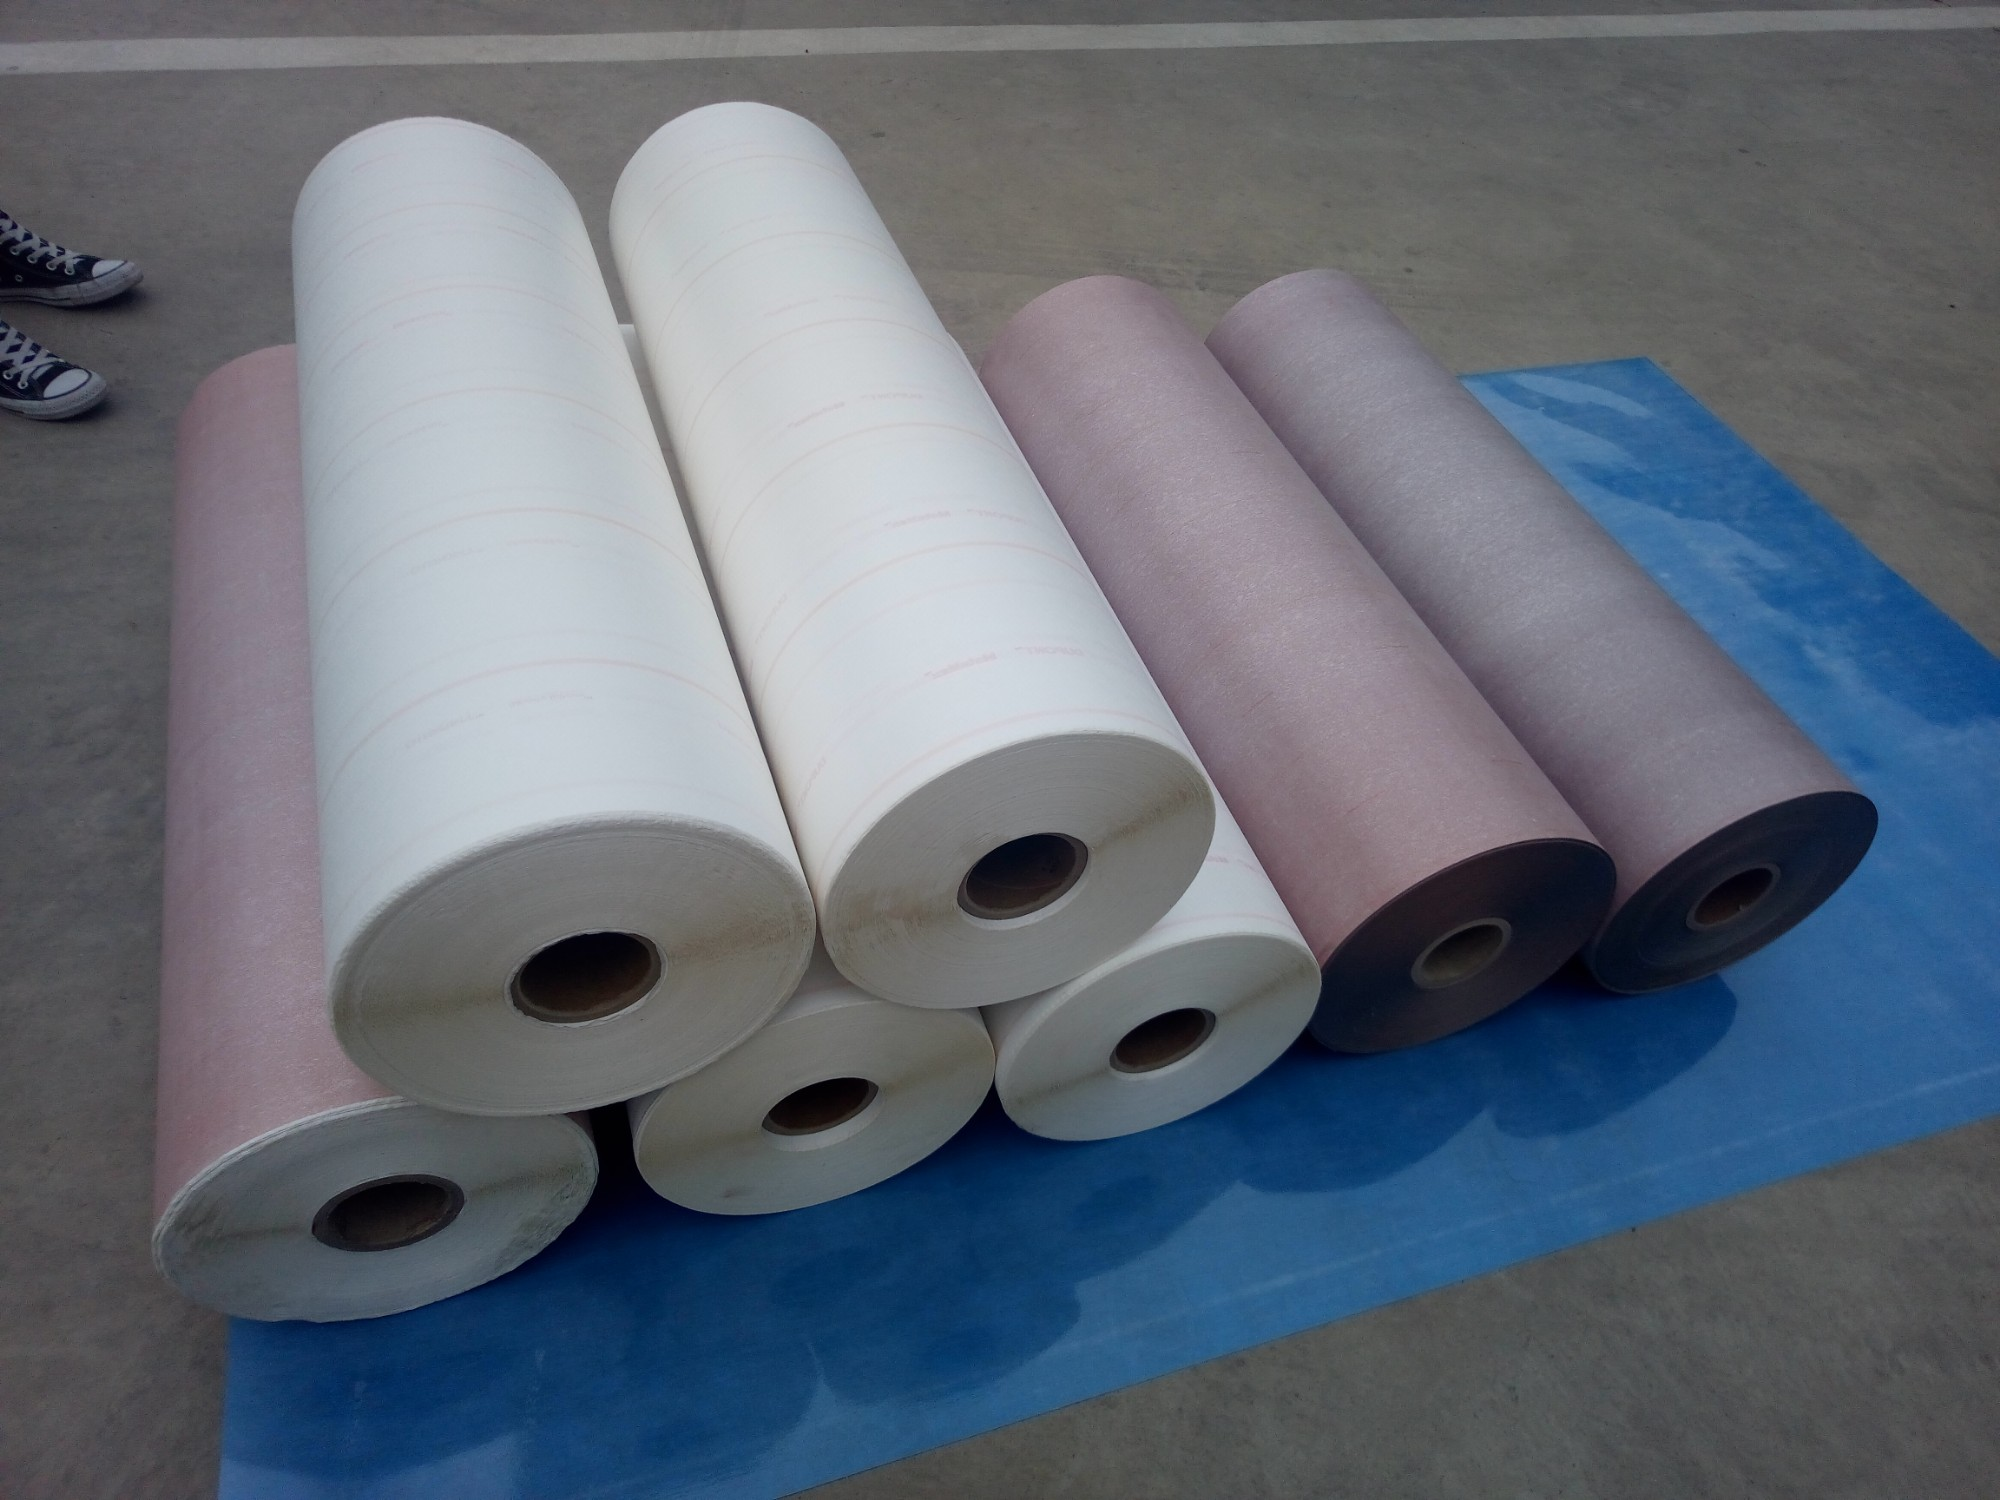 6650 NHN composite electrical insulation paper